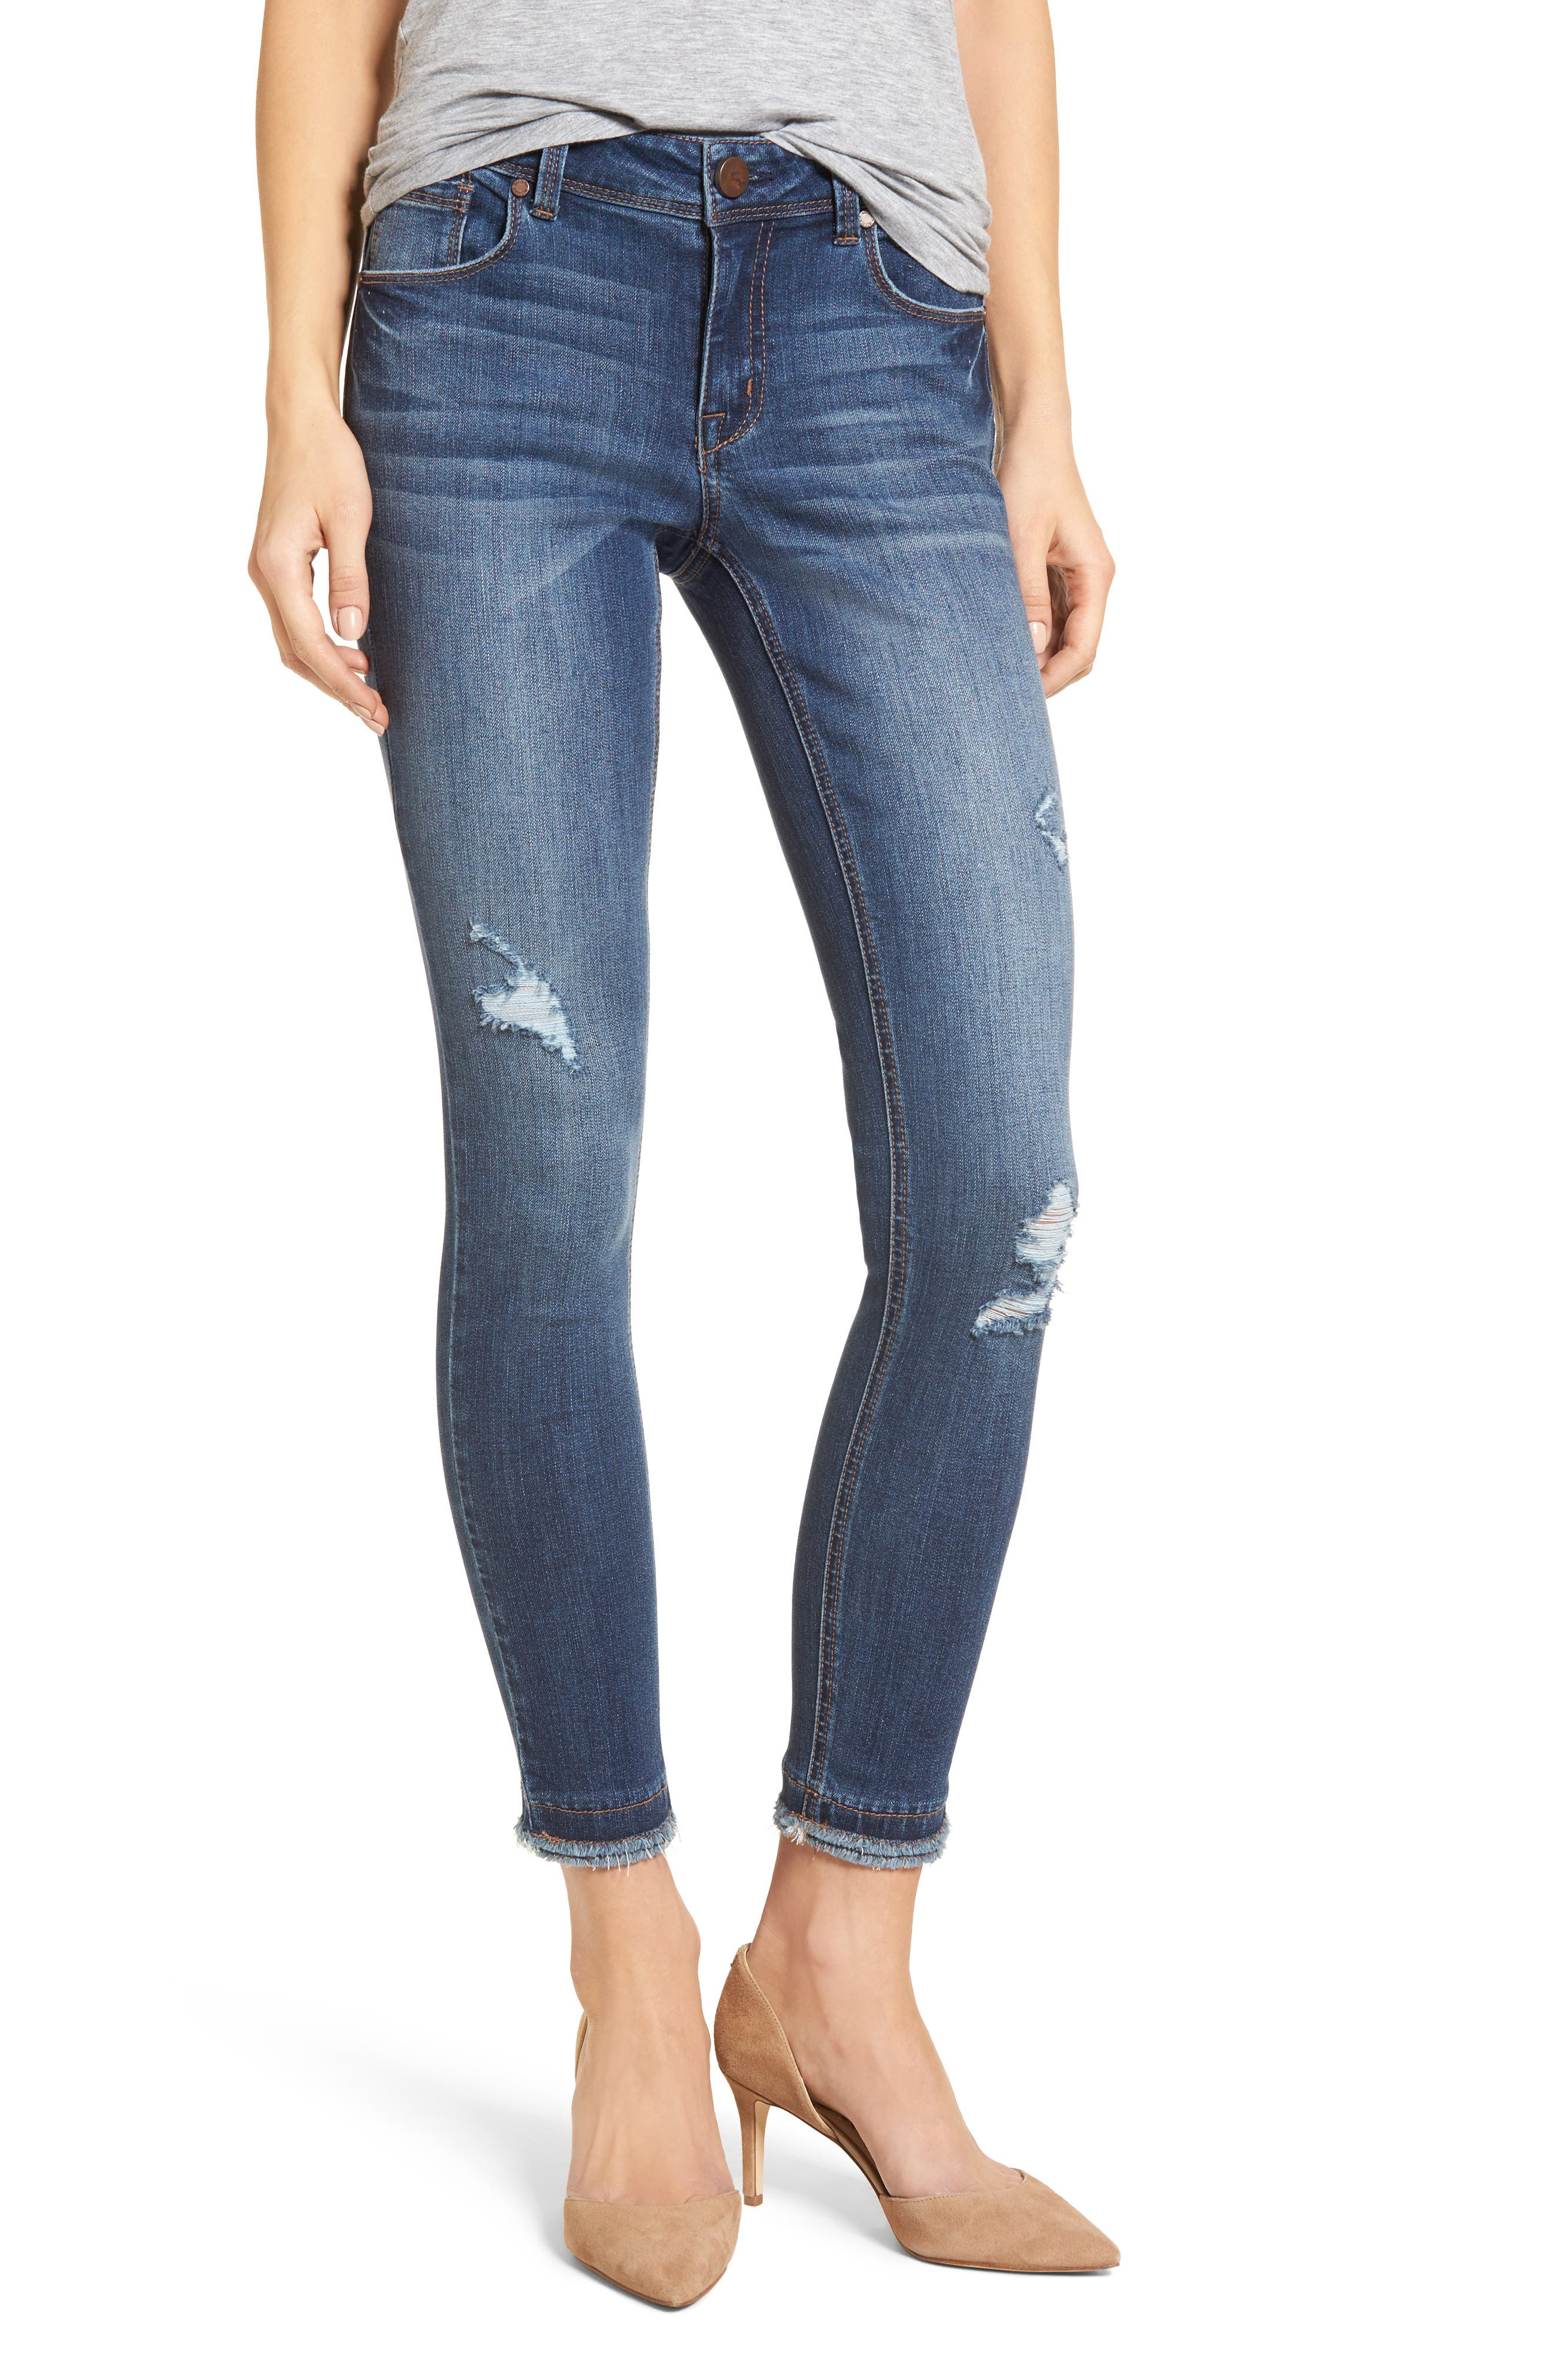 Main Image - 1822 Denim Double Fray Hem Skinny Jeans (Gerard)